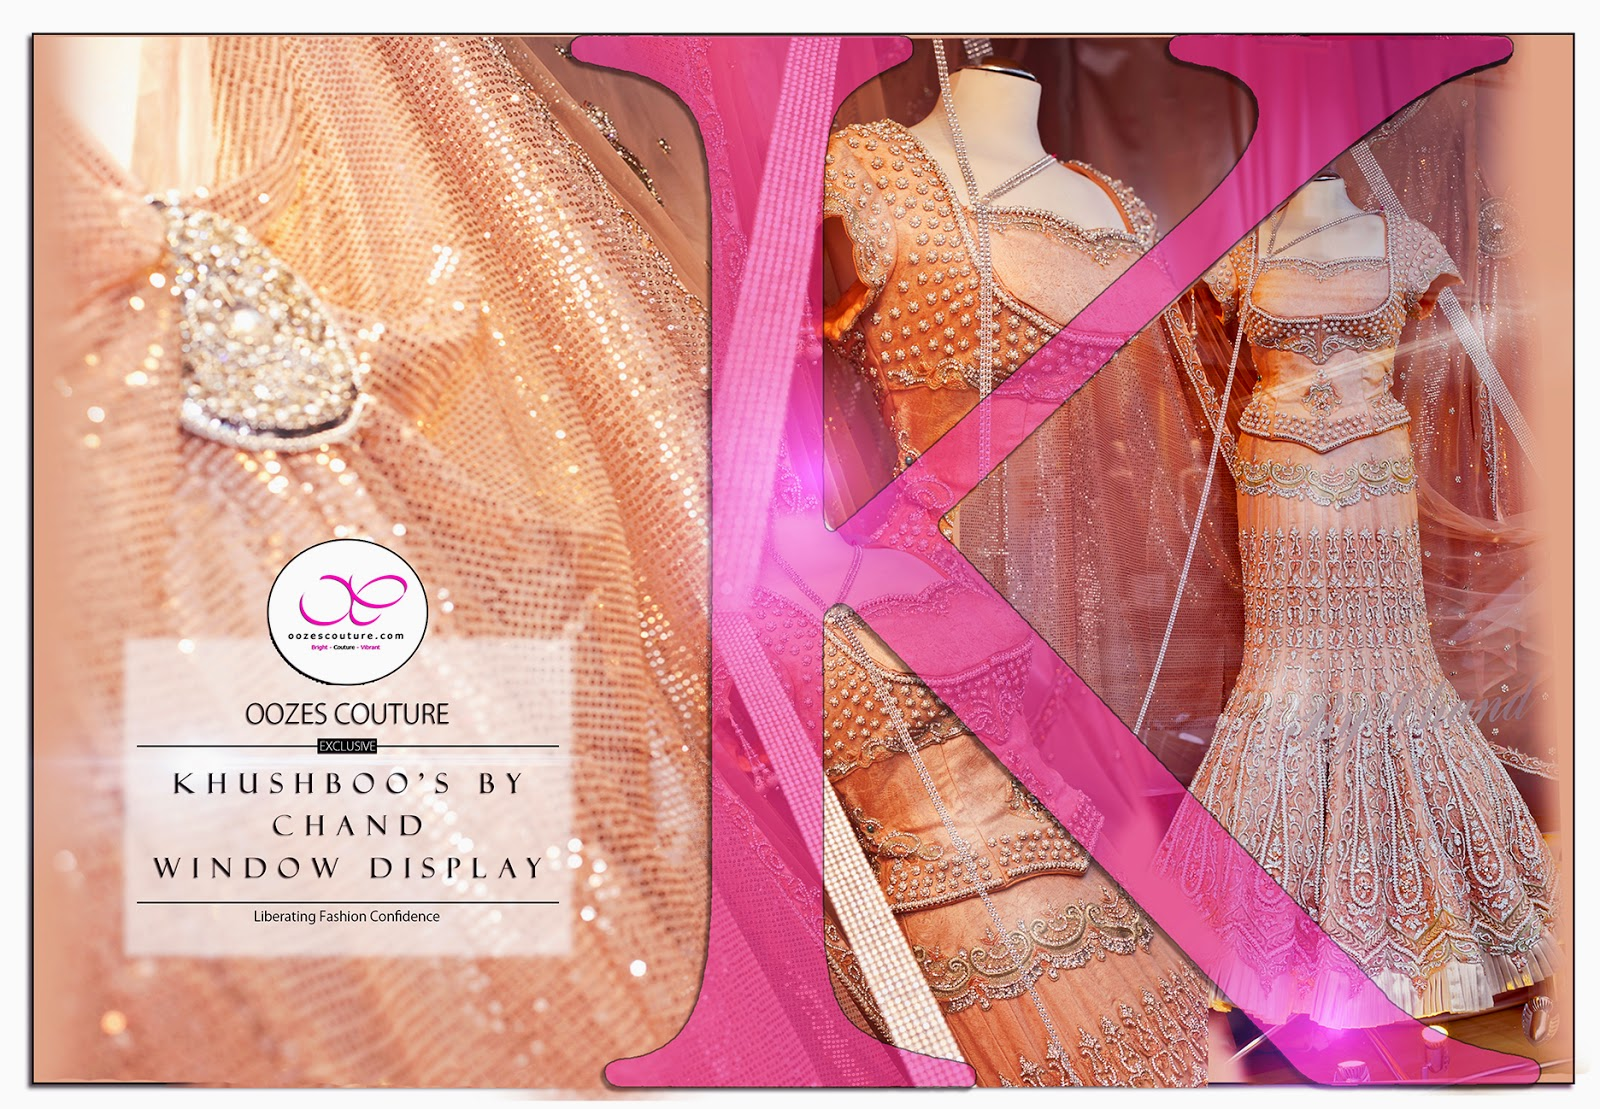 Khushboos by Chand the Birmingham based couture designer